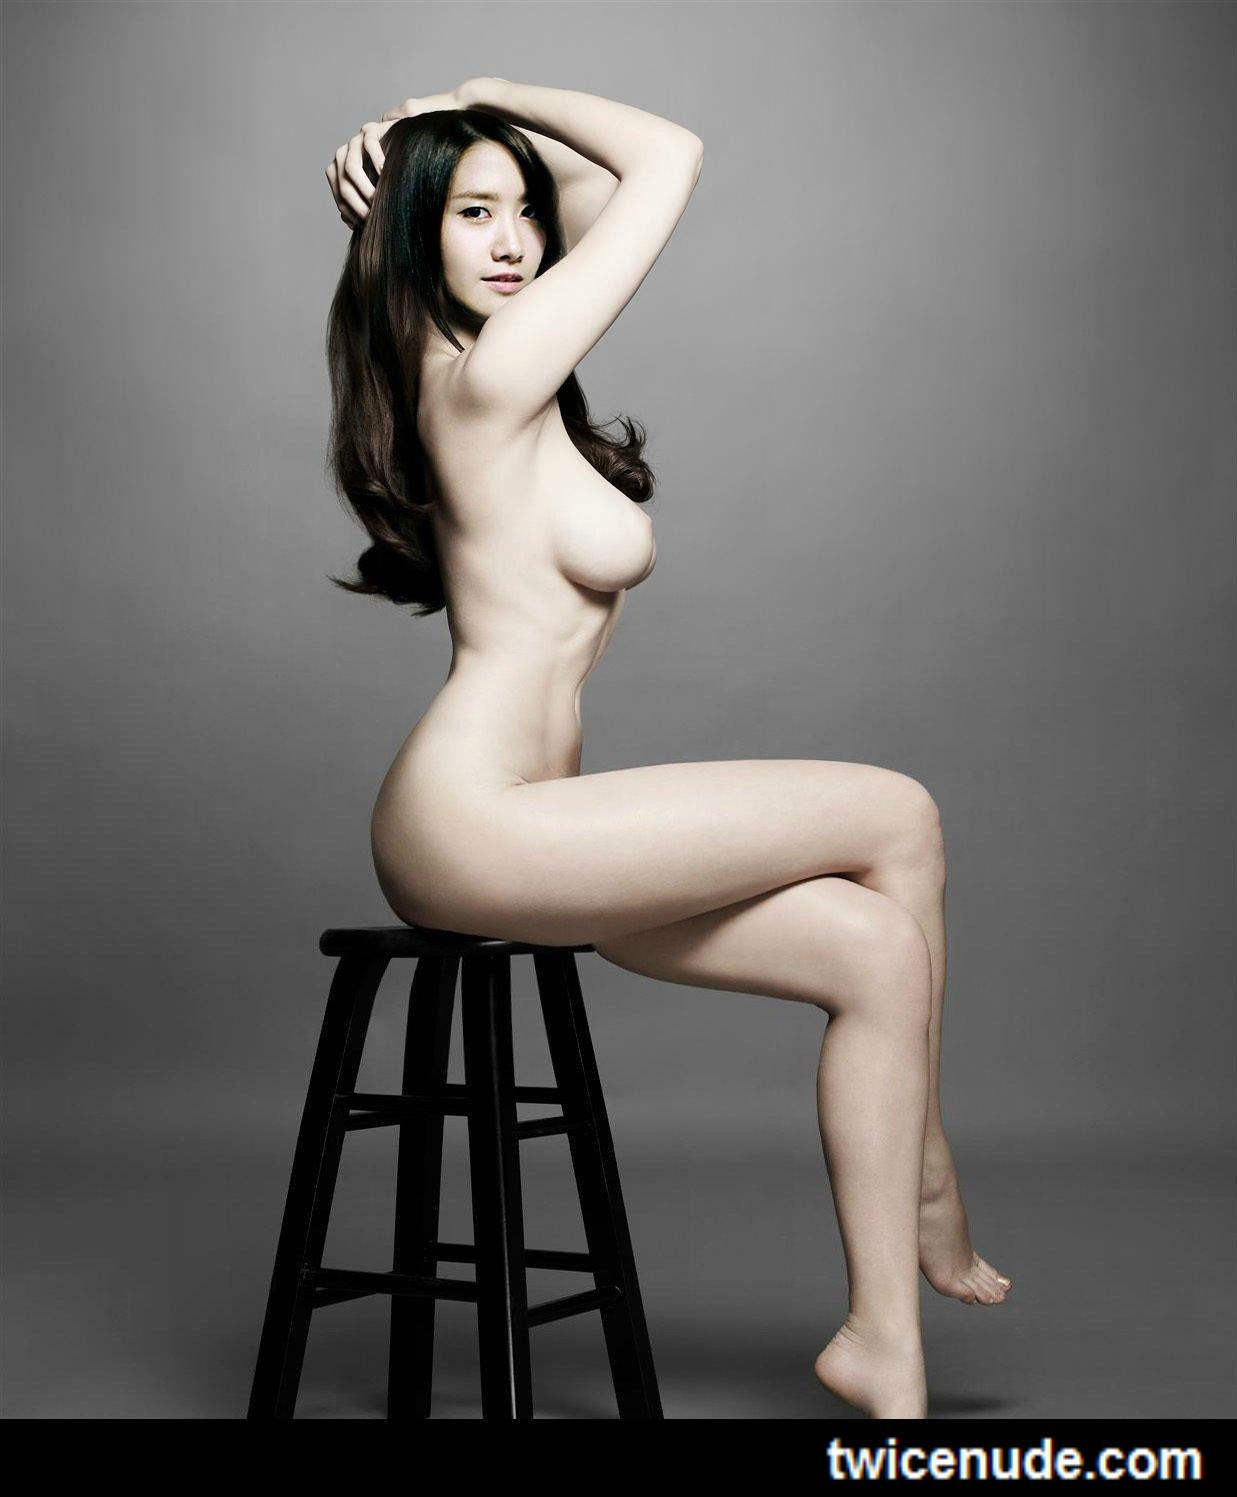 Chinese Erotic Photos Of Celebrities And Sexy Actresses